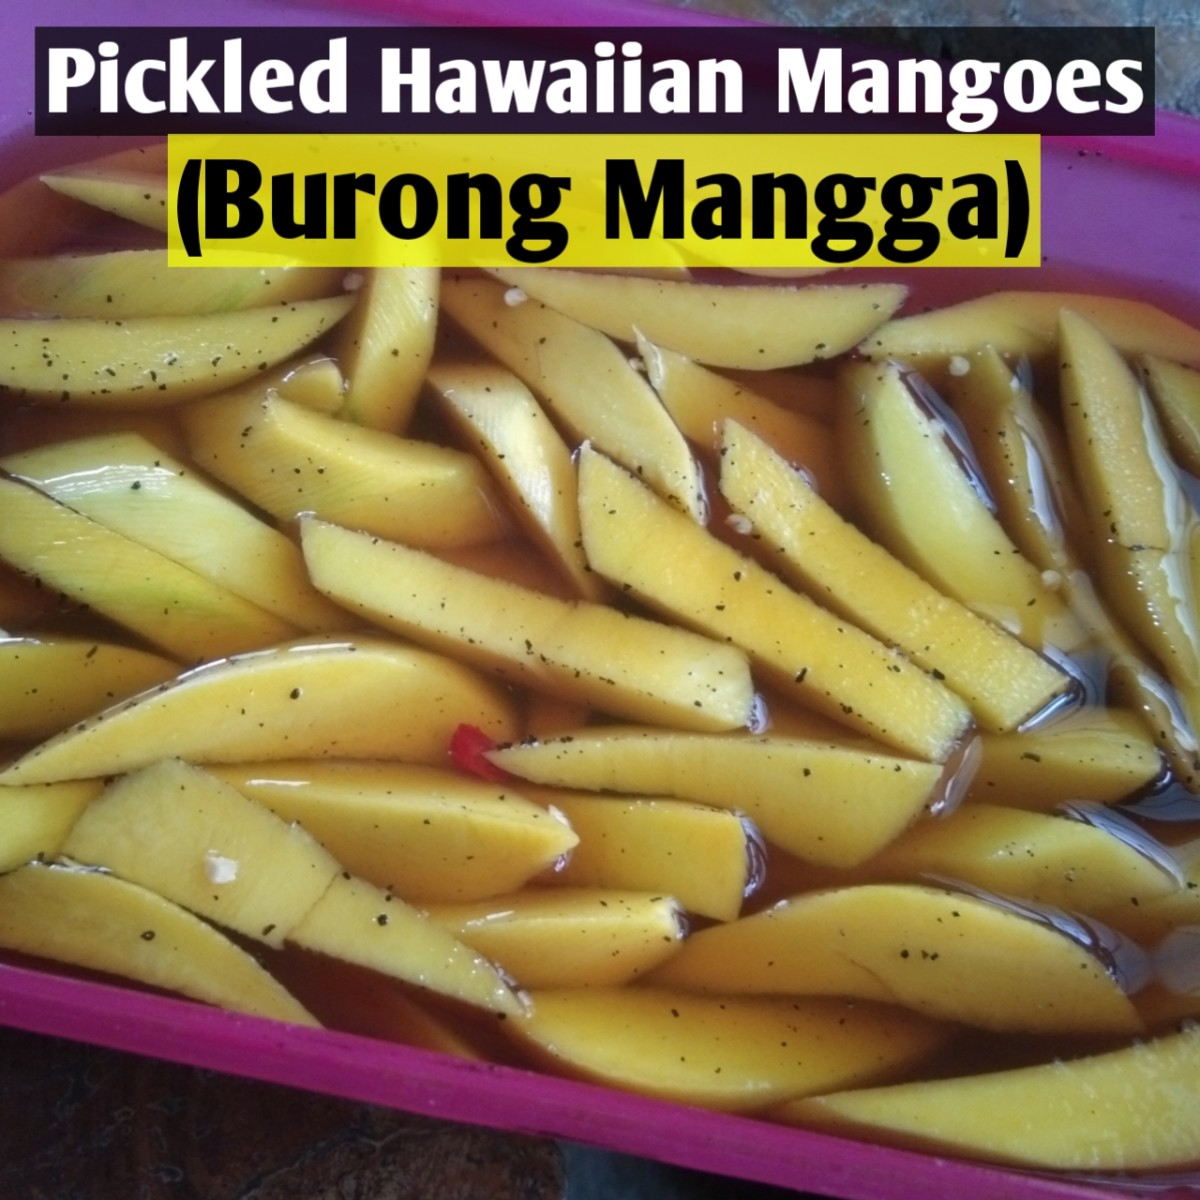 How to Make Pickled Hawaiian Mangoes (Burong Mangga)